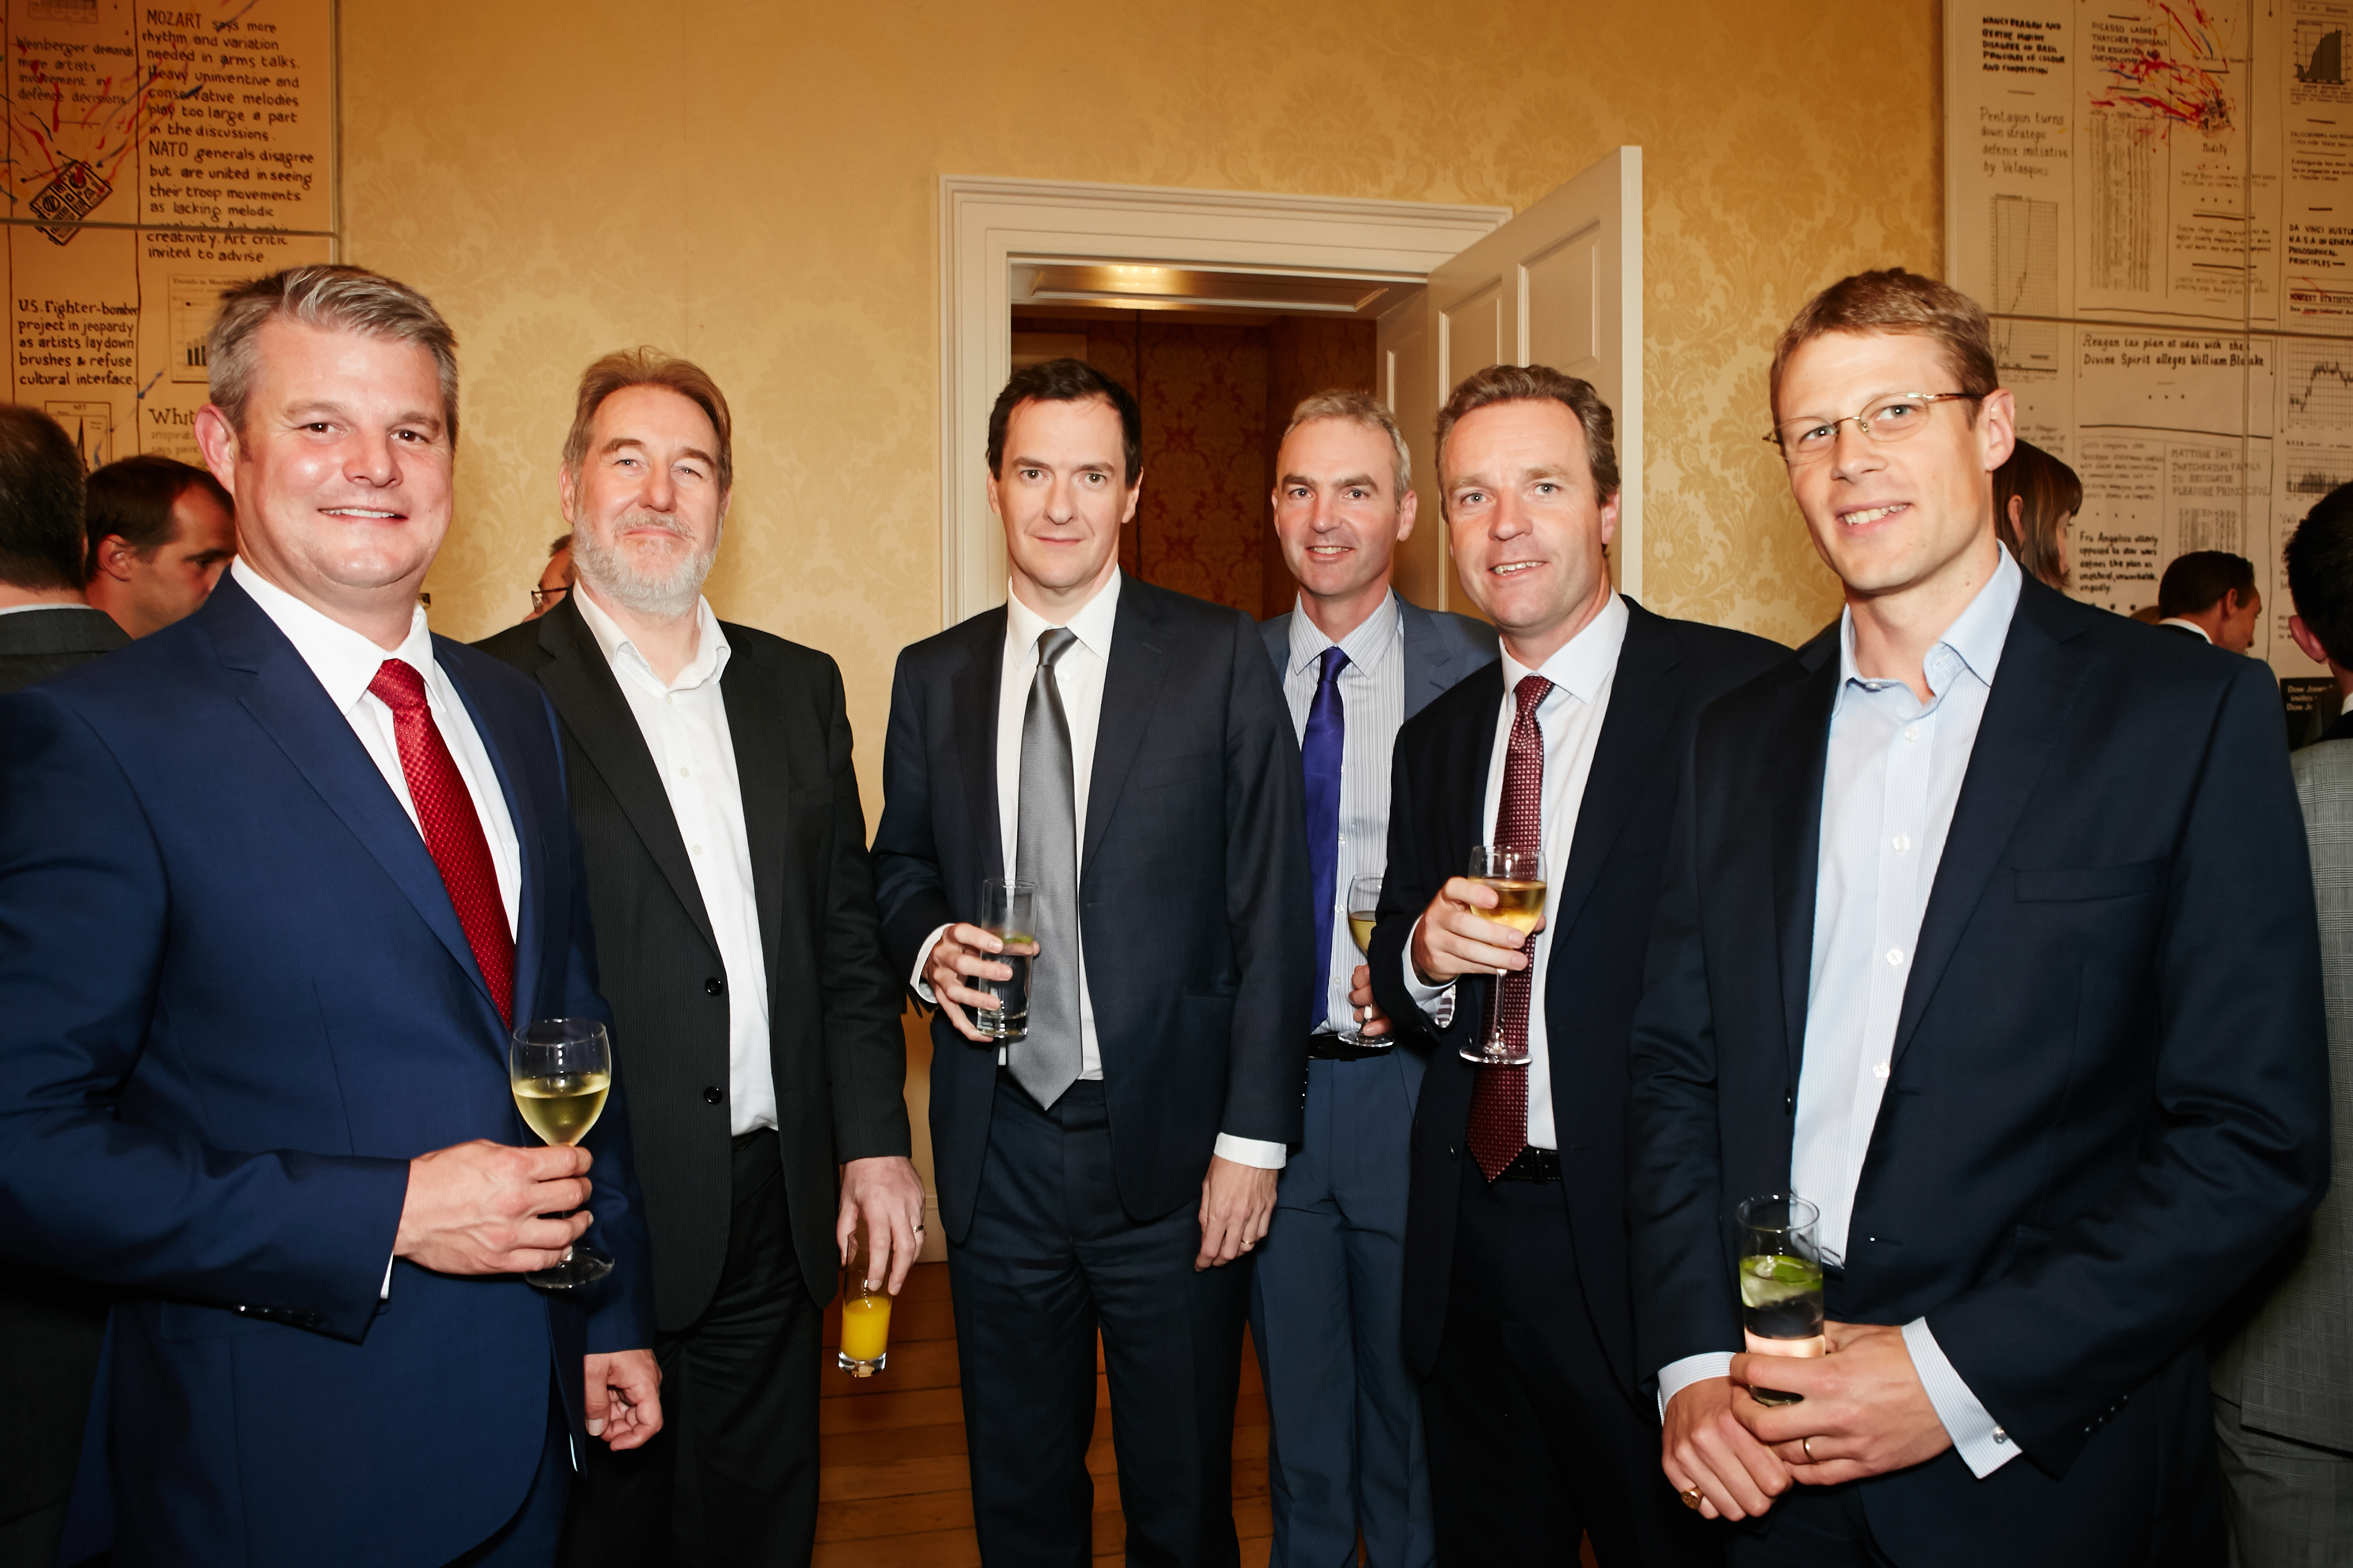 L-R Stuart Andrew MP, Chris Spencer Chief Executive Officer of EMIS Group; Rt Hon George Osborne MP; Robert Pickard Director LBBC; Howard Pickard Managing Director LBBC; Peter Southby Chief Financial Officer EMIS Group.